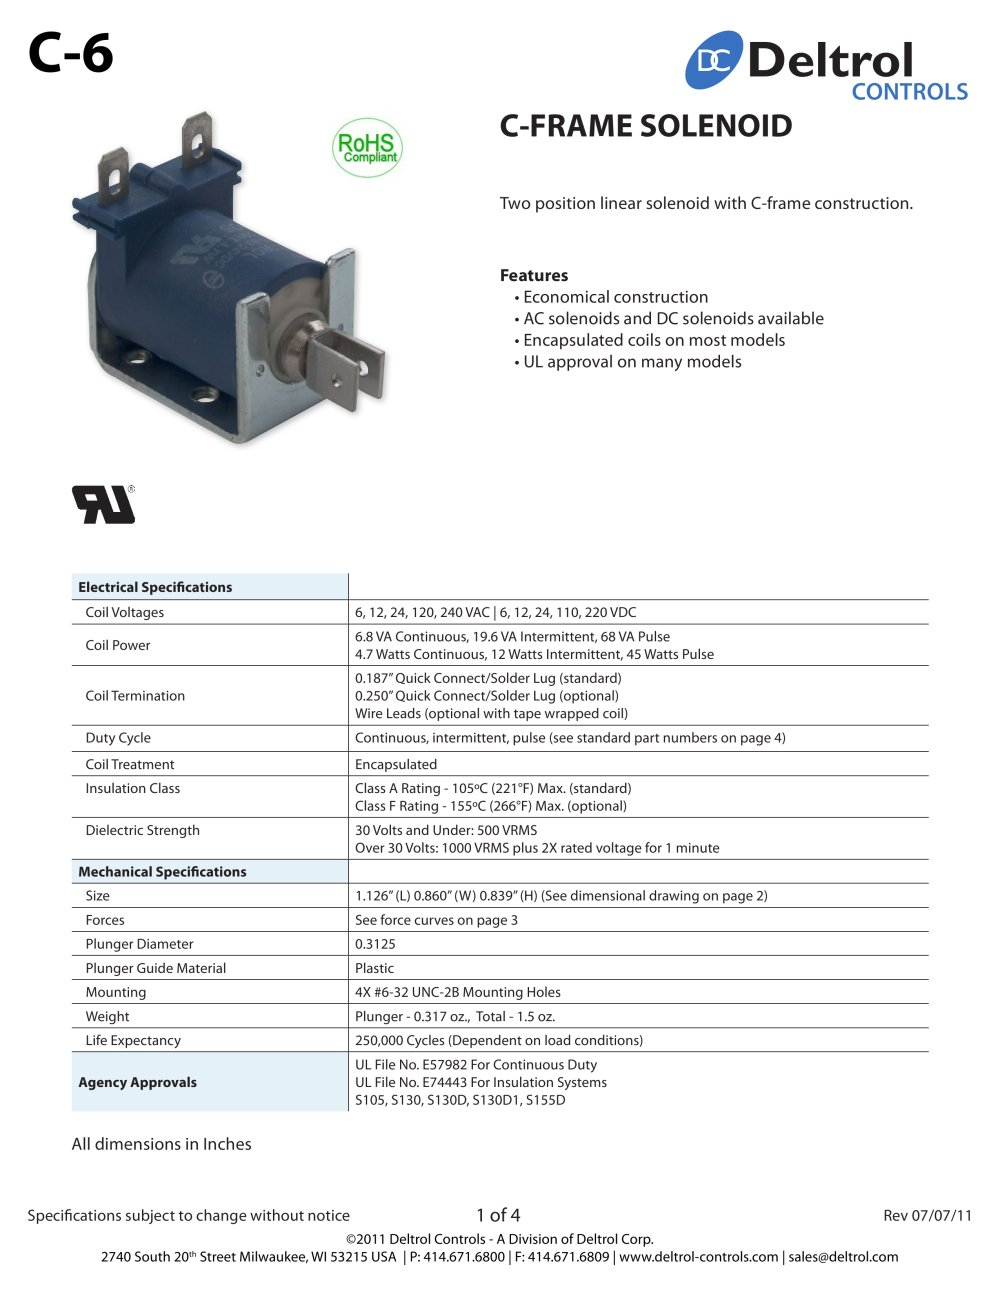 C 6 Frame Solenoid Deltrol Controls Pdf Catalogue Technical Standard 12 Volt Wiring Diagram 1 4 Pages